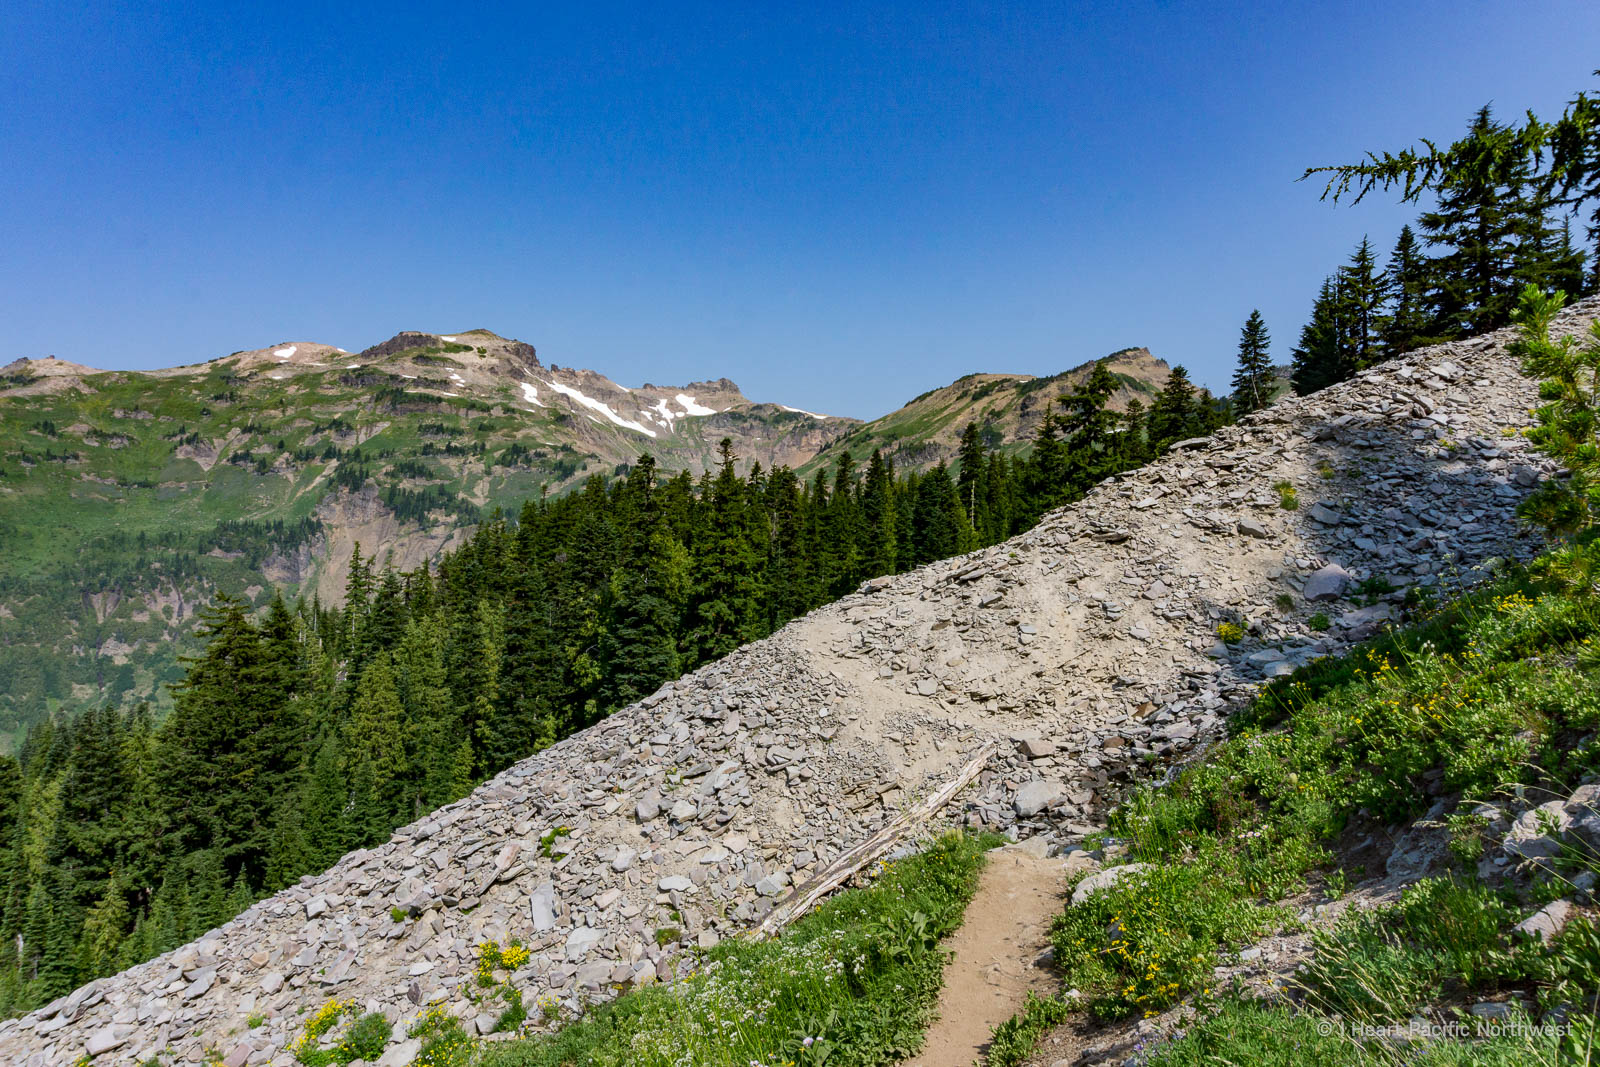 Goat Rocks Wilderness backpacking trip